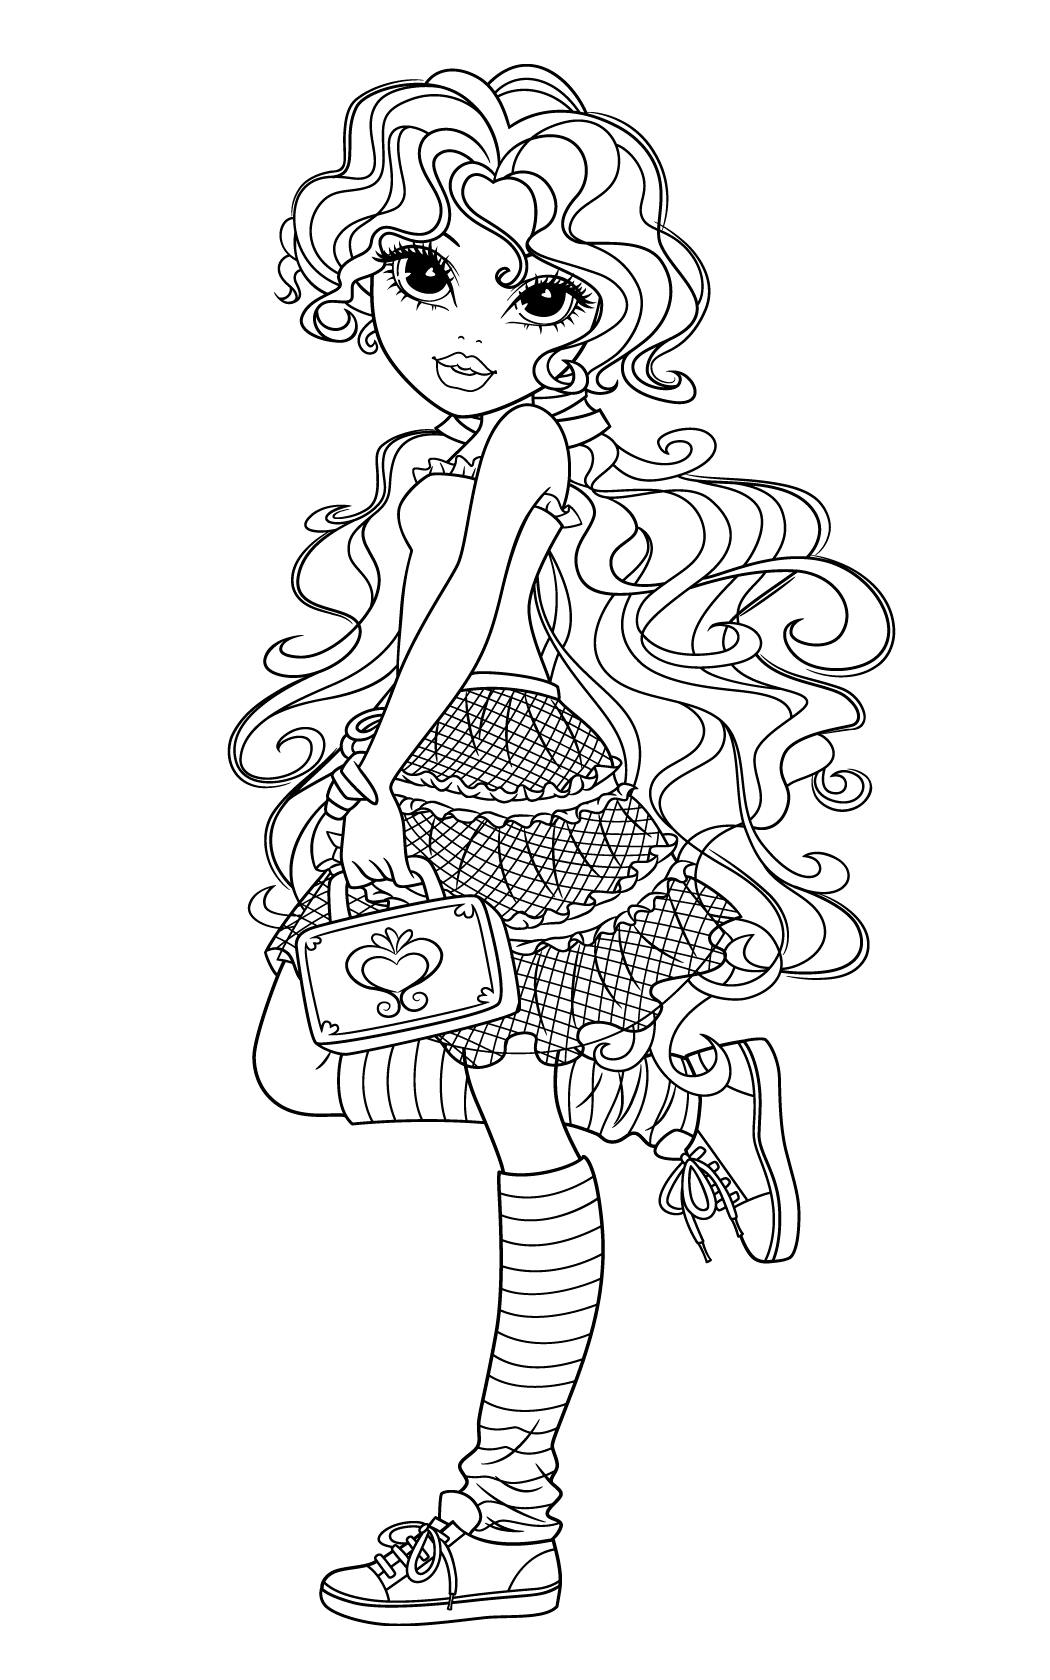 Moxie Girlz Coloring Pages2 Coloring Kids